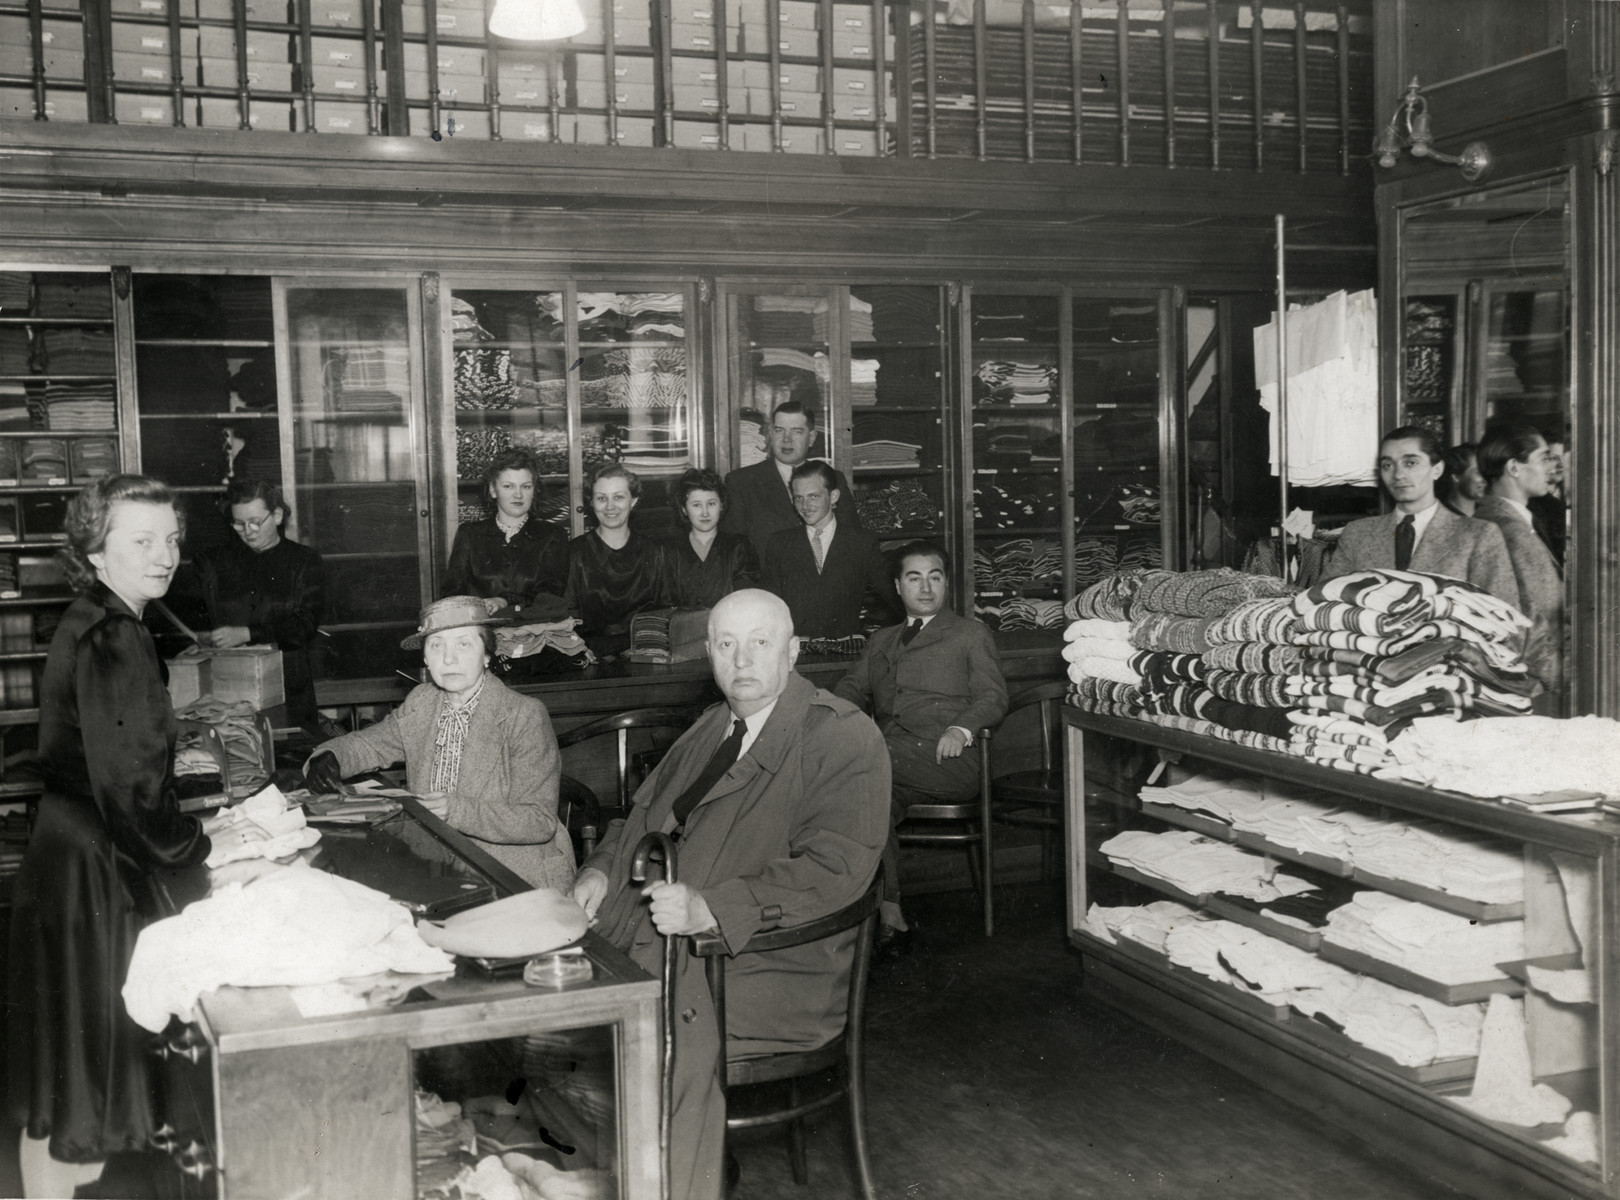 The staff of the Somlo knit wear store in Budapest, Hungary assists a Polish prince and his wife who came to purchase goods.